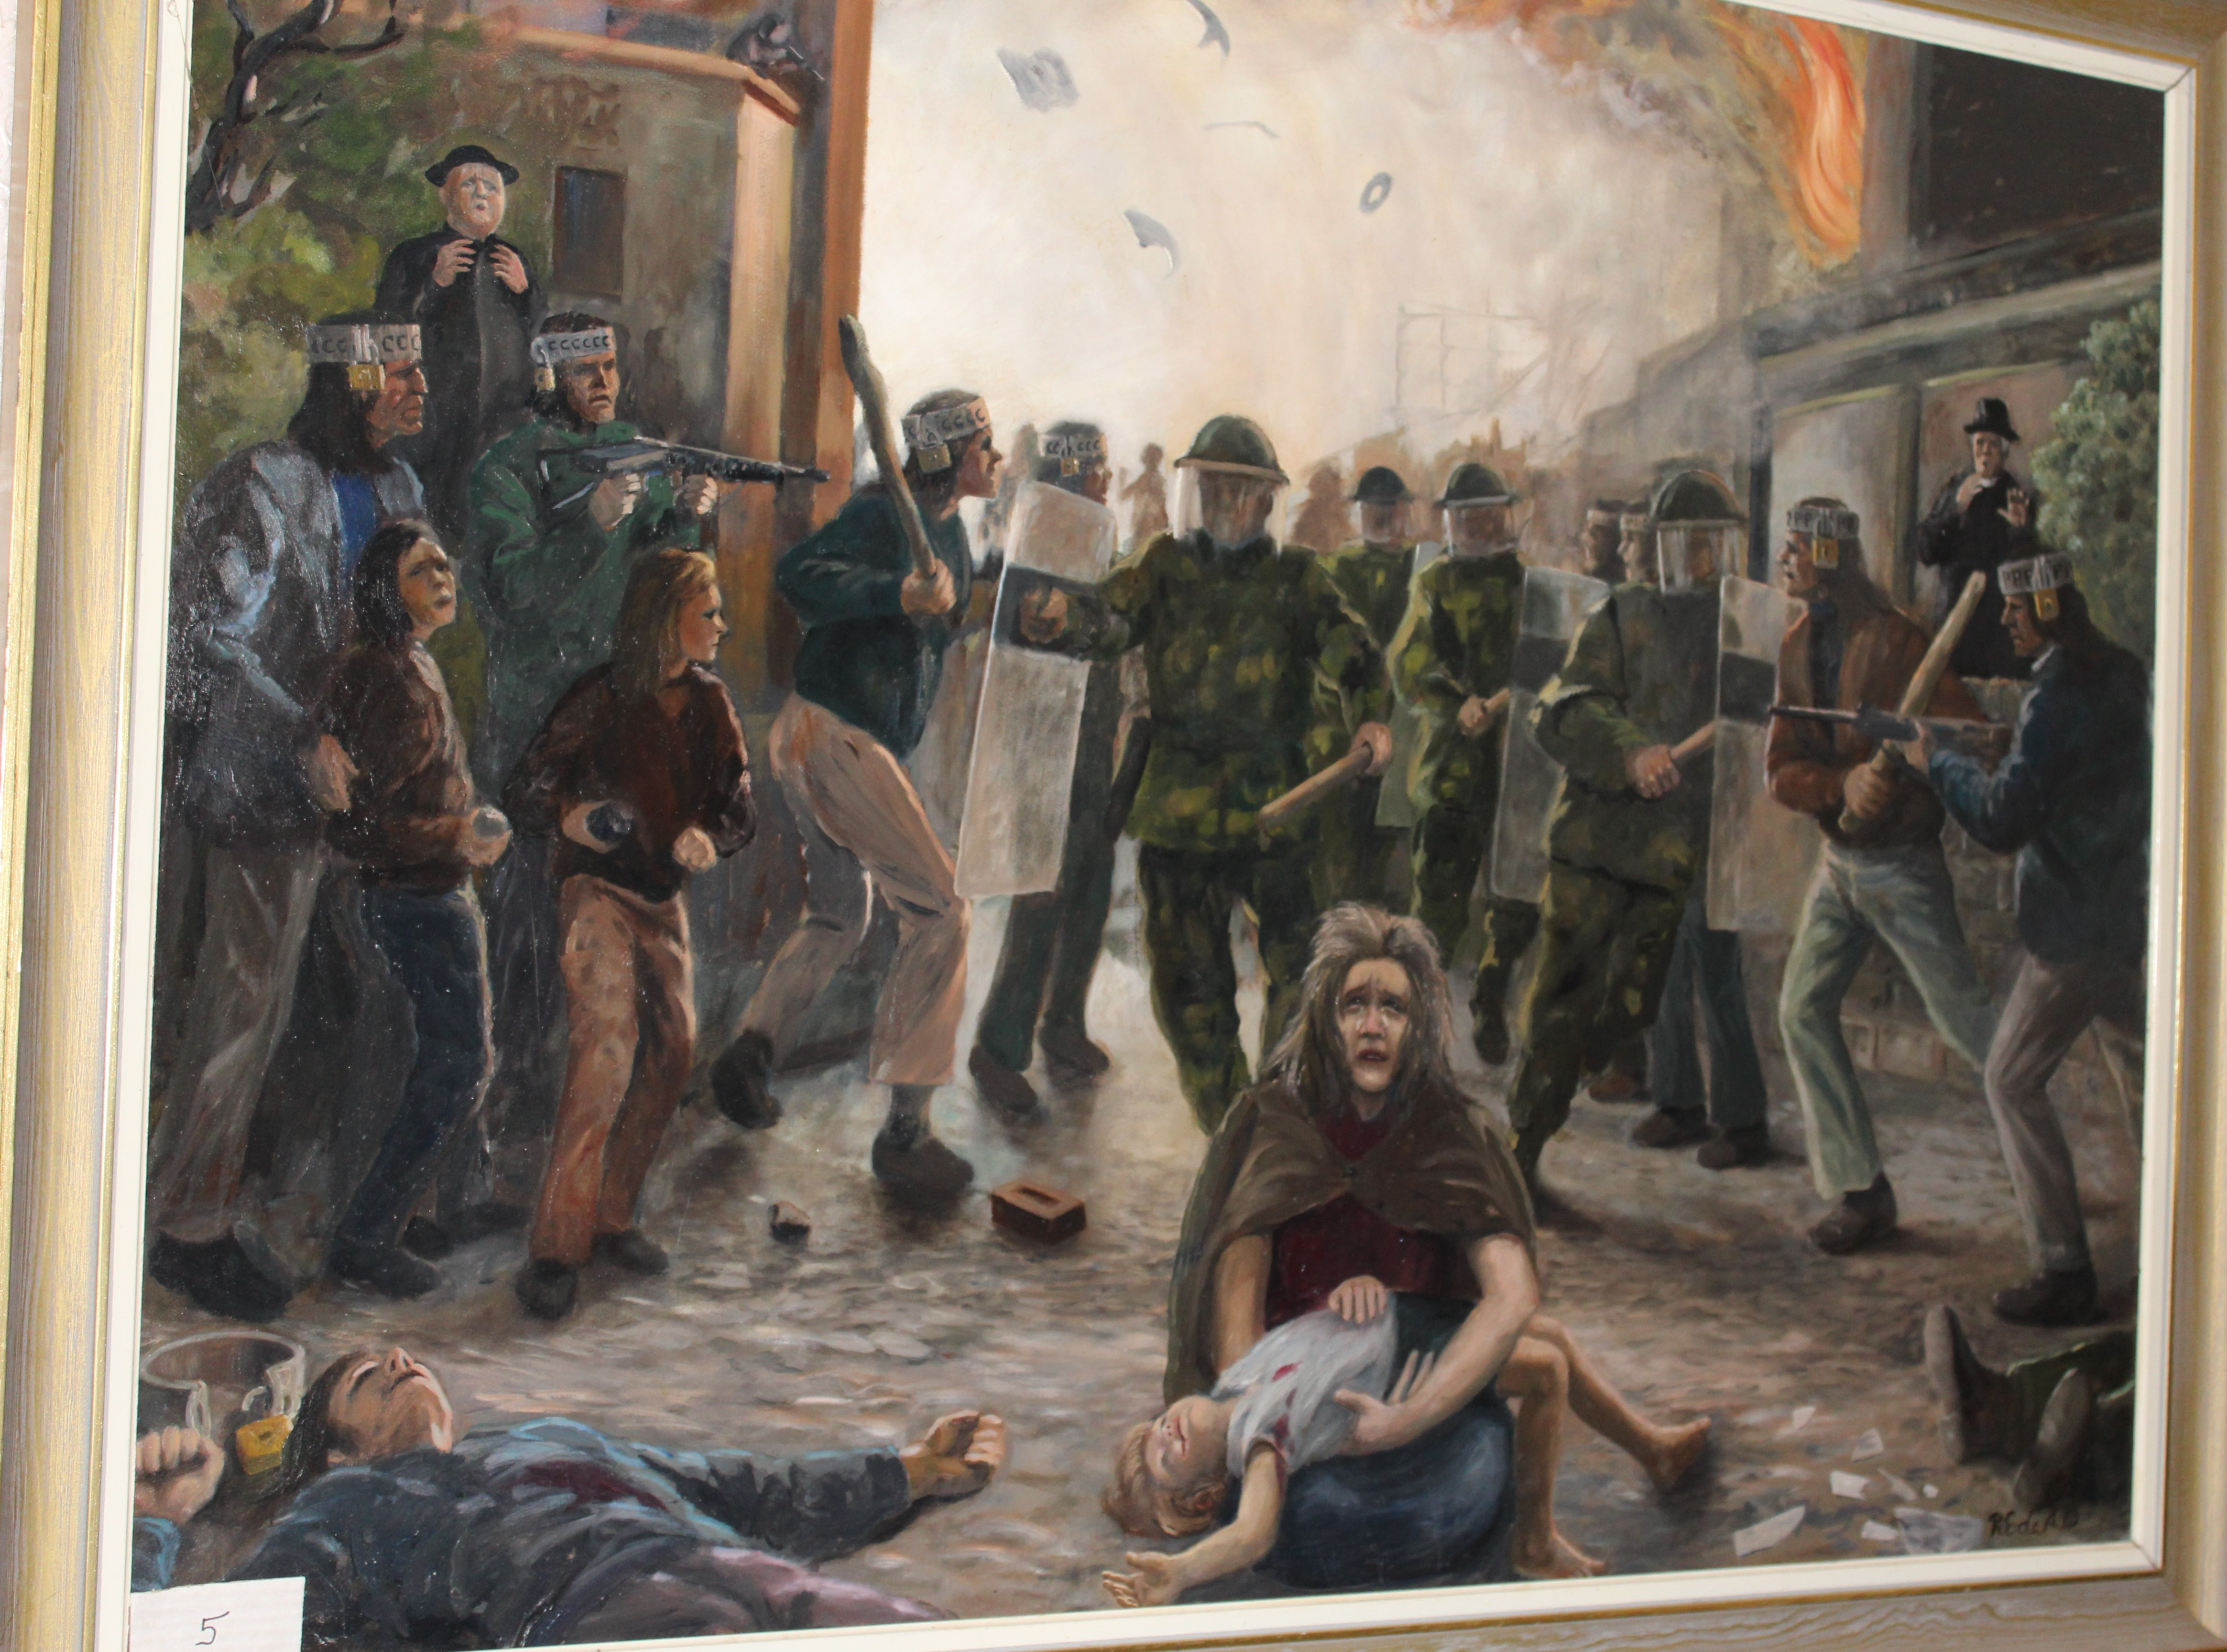 •ULSTER, A TRAGEDY OF LOCKED MINDS Signed framed oil on board, dated 1973, 89 x 120cm, titled on